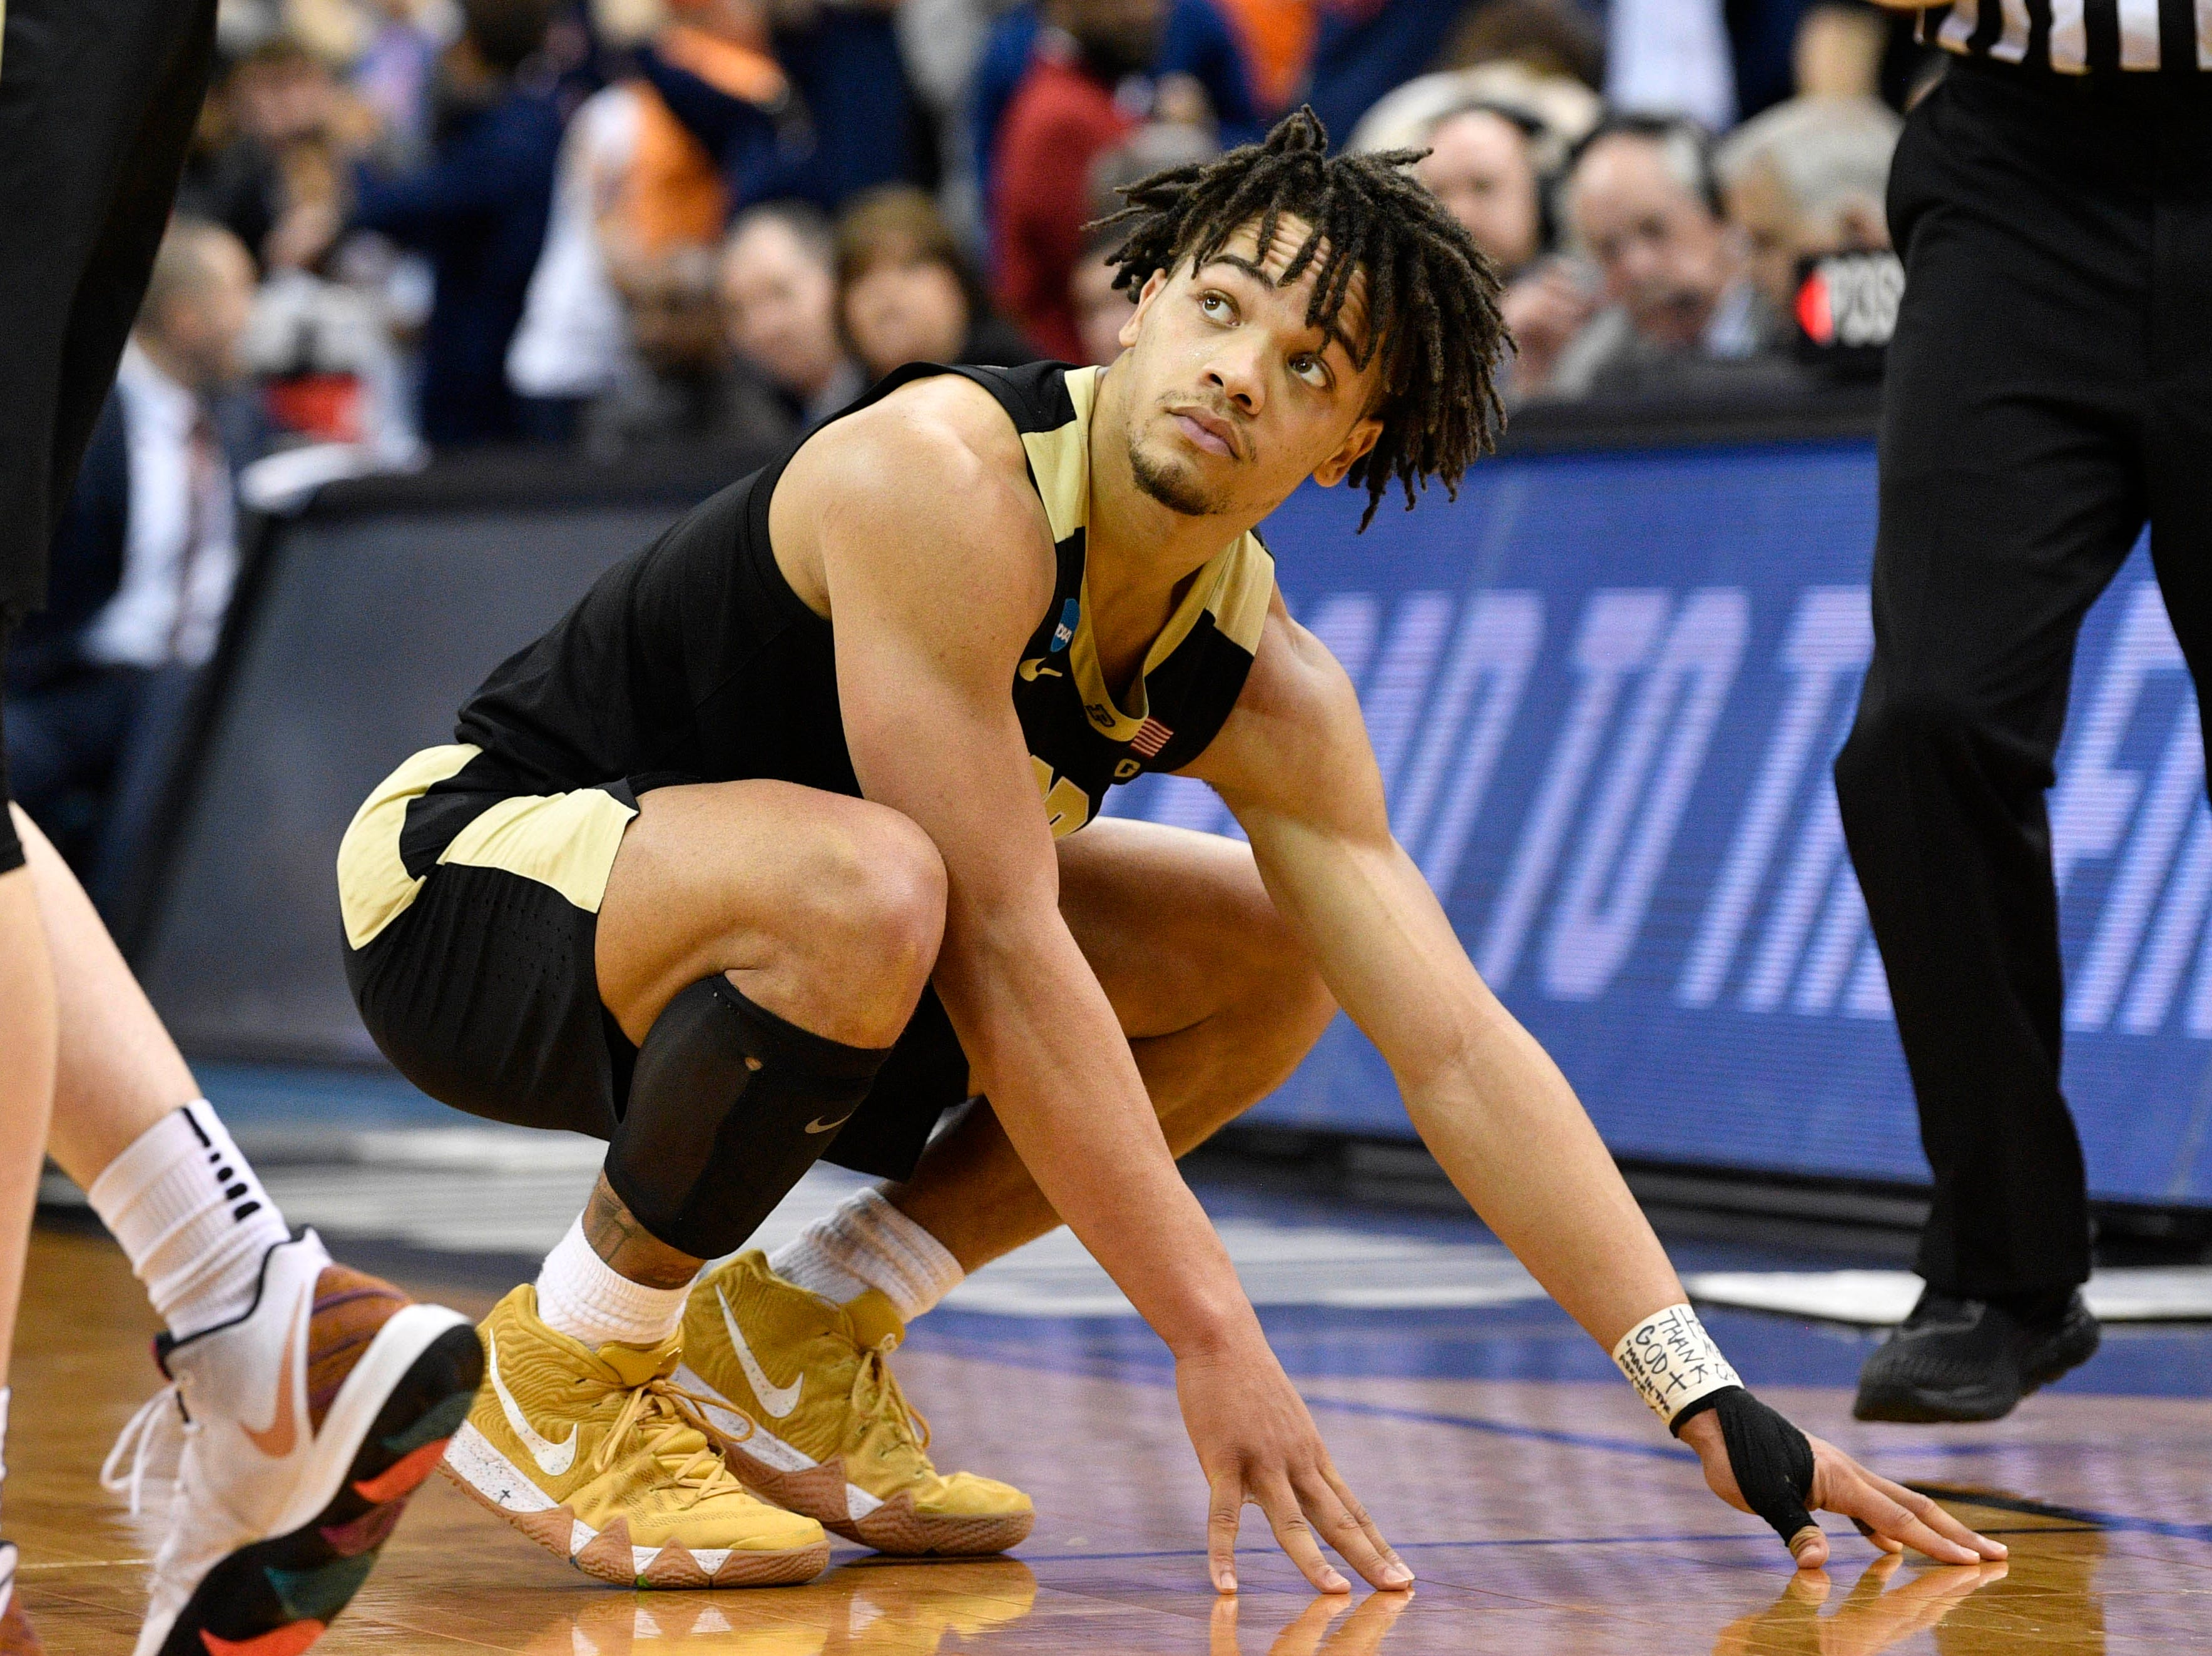 Elite Eight: No. 3 Purdue loses to No. 1 Virginia, 80-75 in overtime.